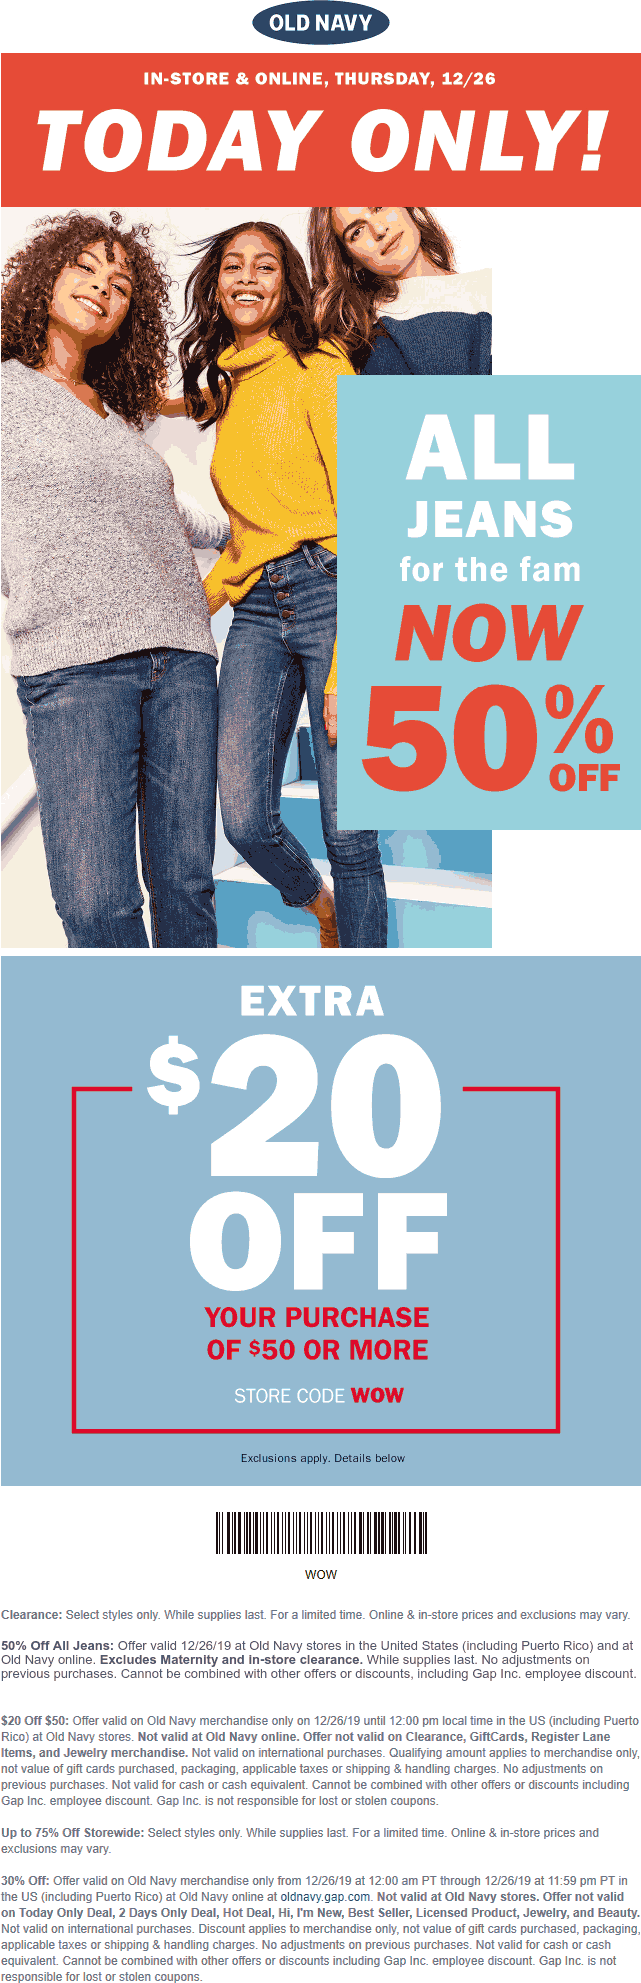 Old Navy Coupon January 2020 $20 off $50 + 50% off jeans today at Old Navy